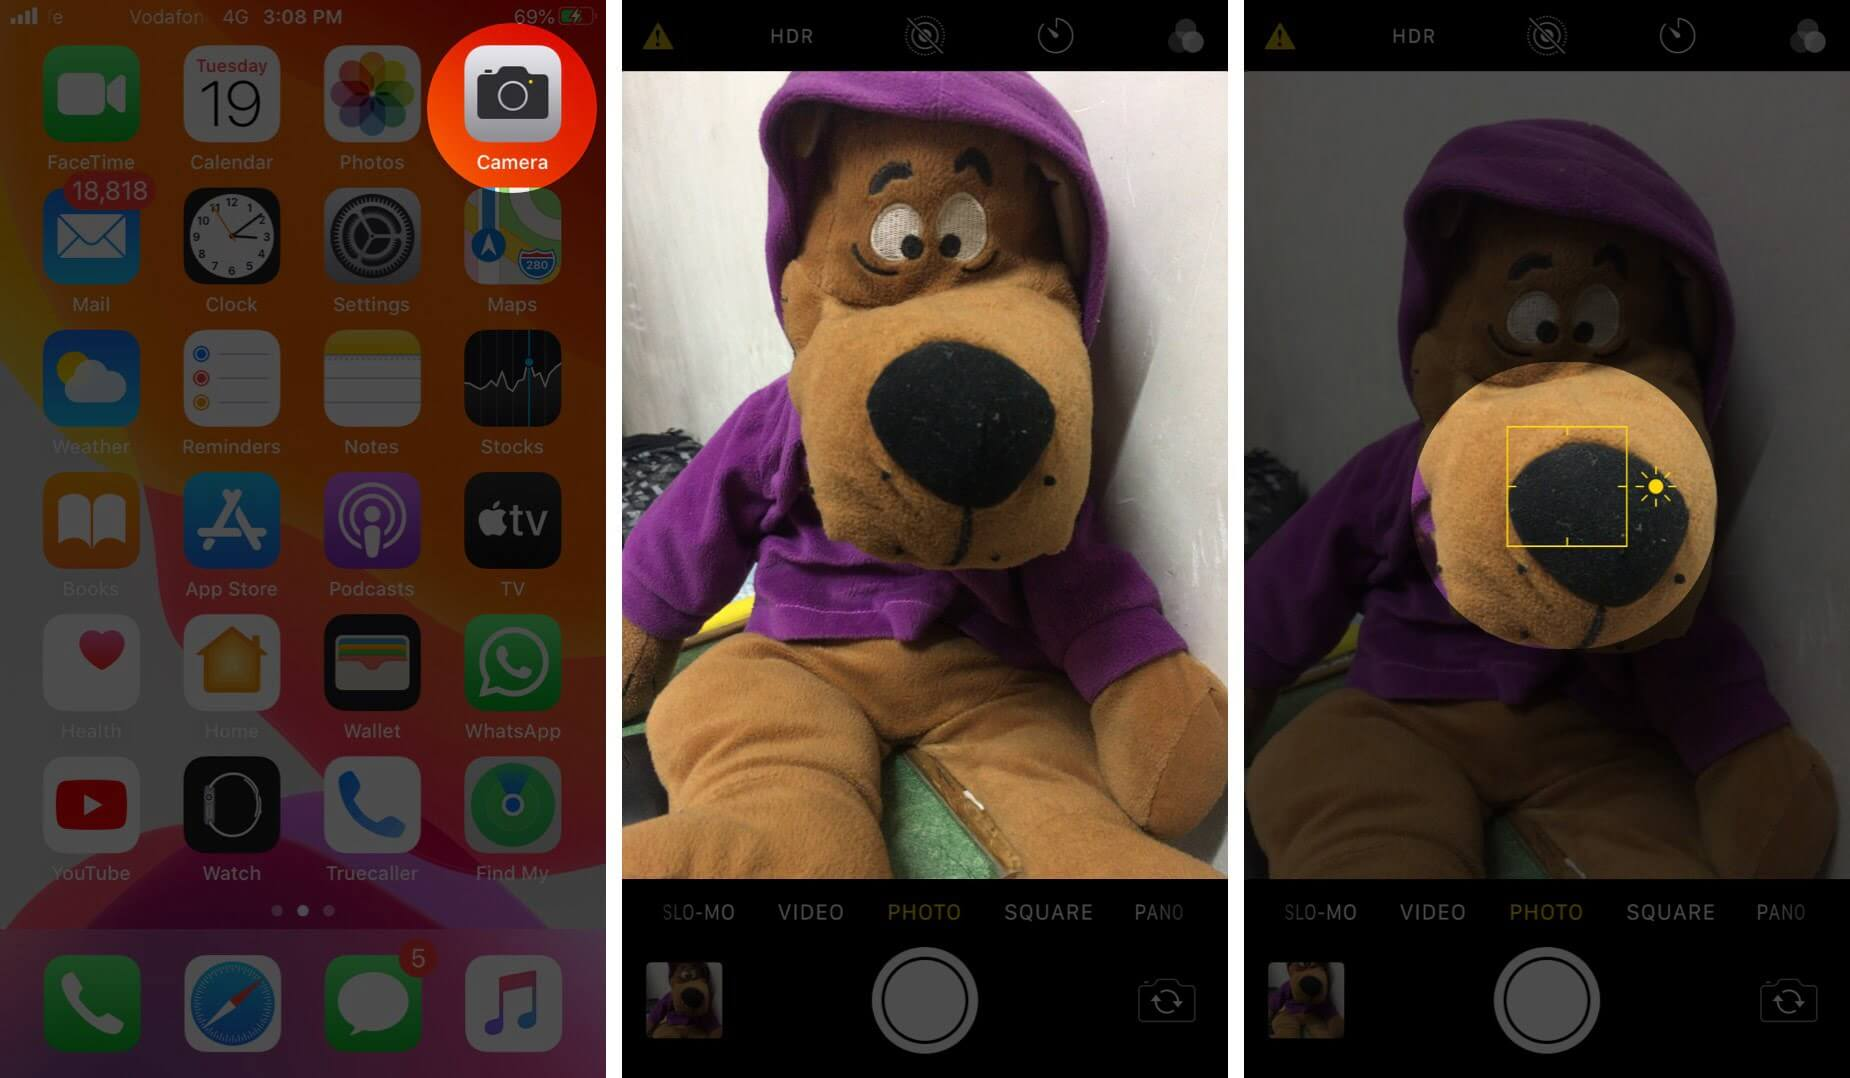 Open Camera App Touch and Hold on Object to View Brightness icon